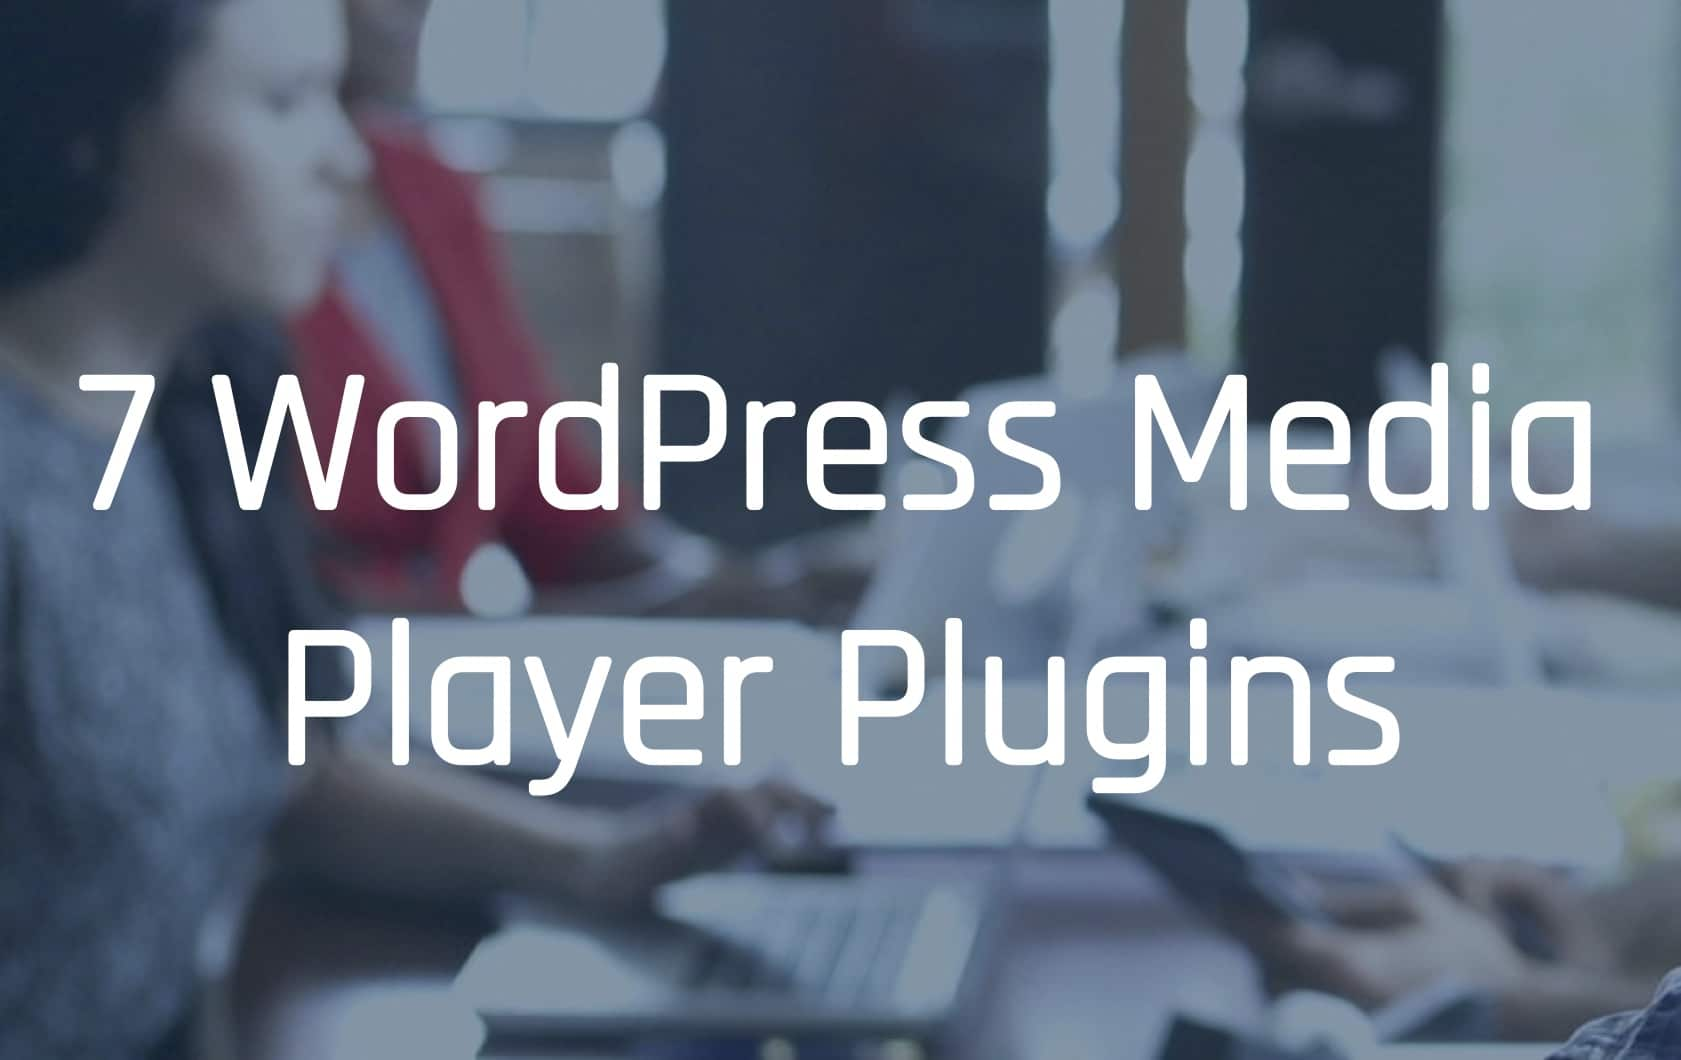 WordPress Media Player